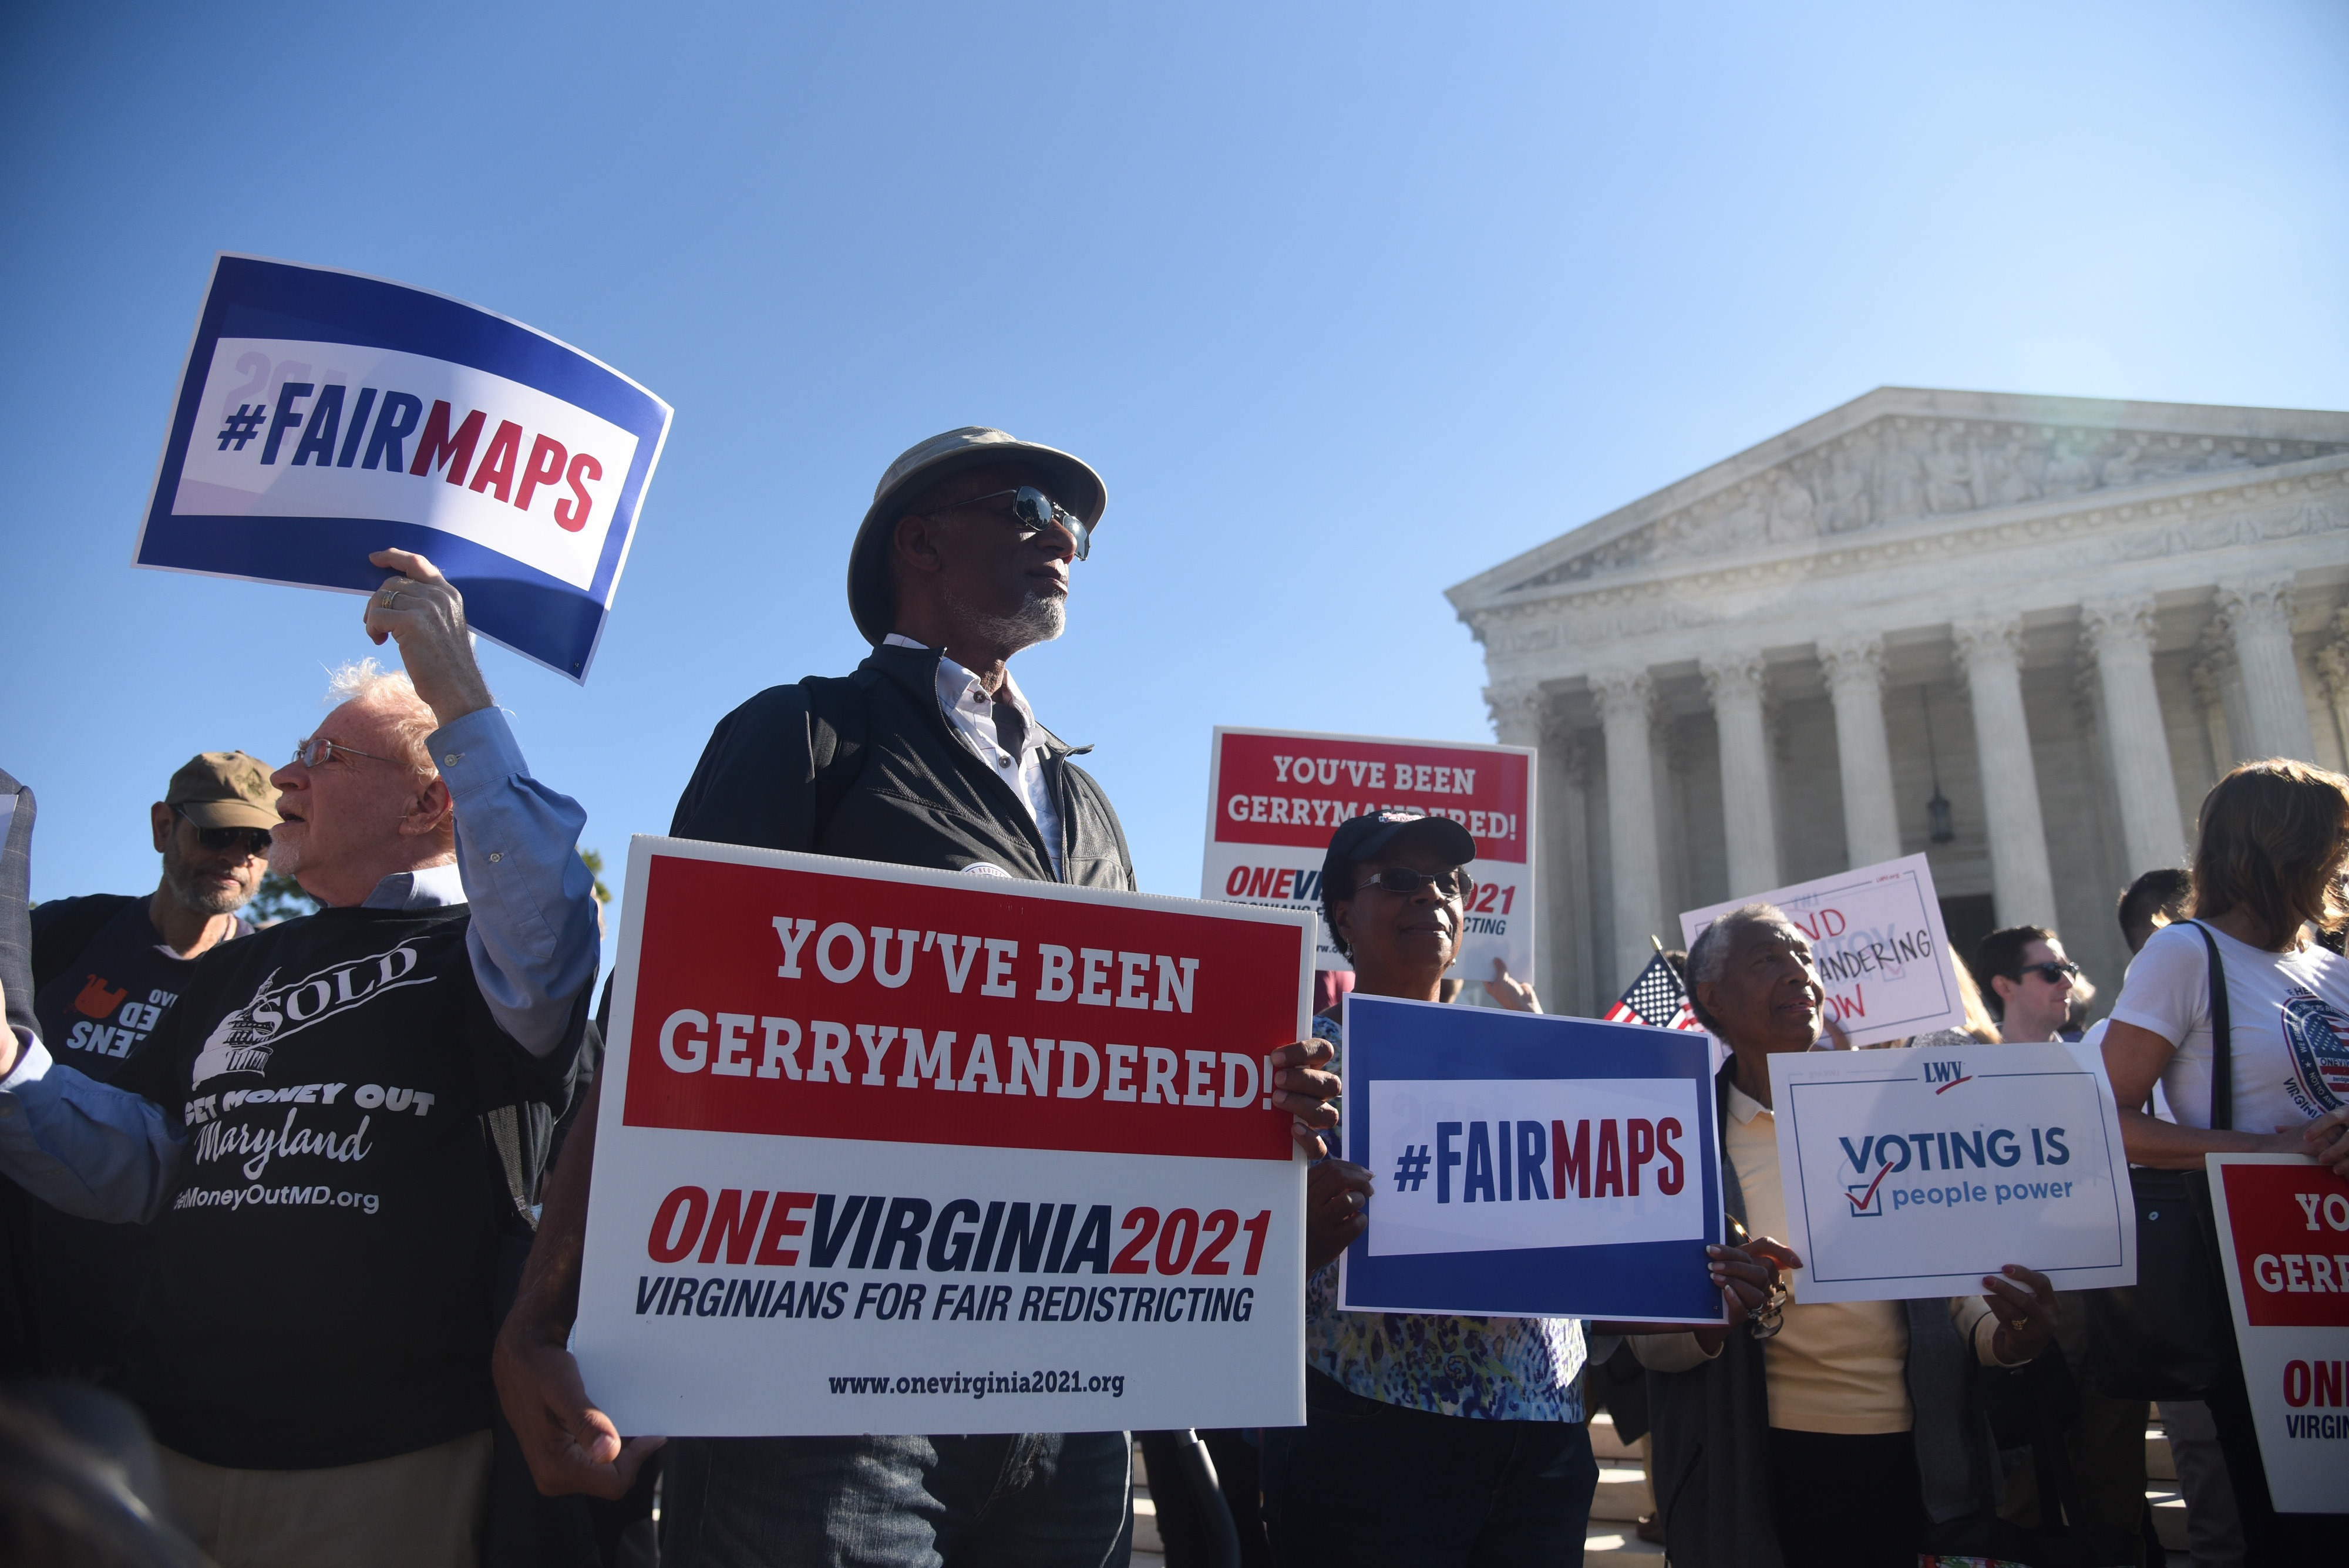 Demonstrators gather outside of the Supreme Court during oral arguments in Gill v. Whitford to call for an end to partisan gerrymandering on October 3, 2017. (Olivier Douliery/Getty Images)